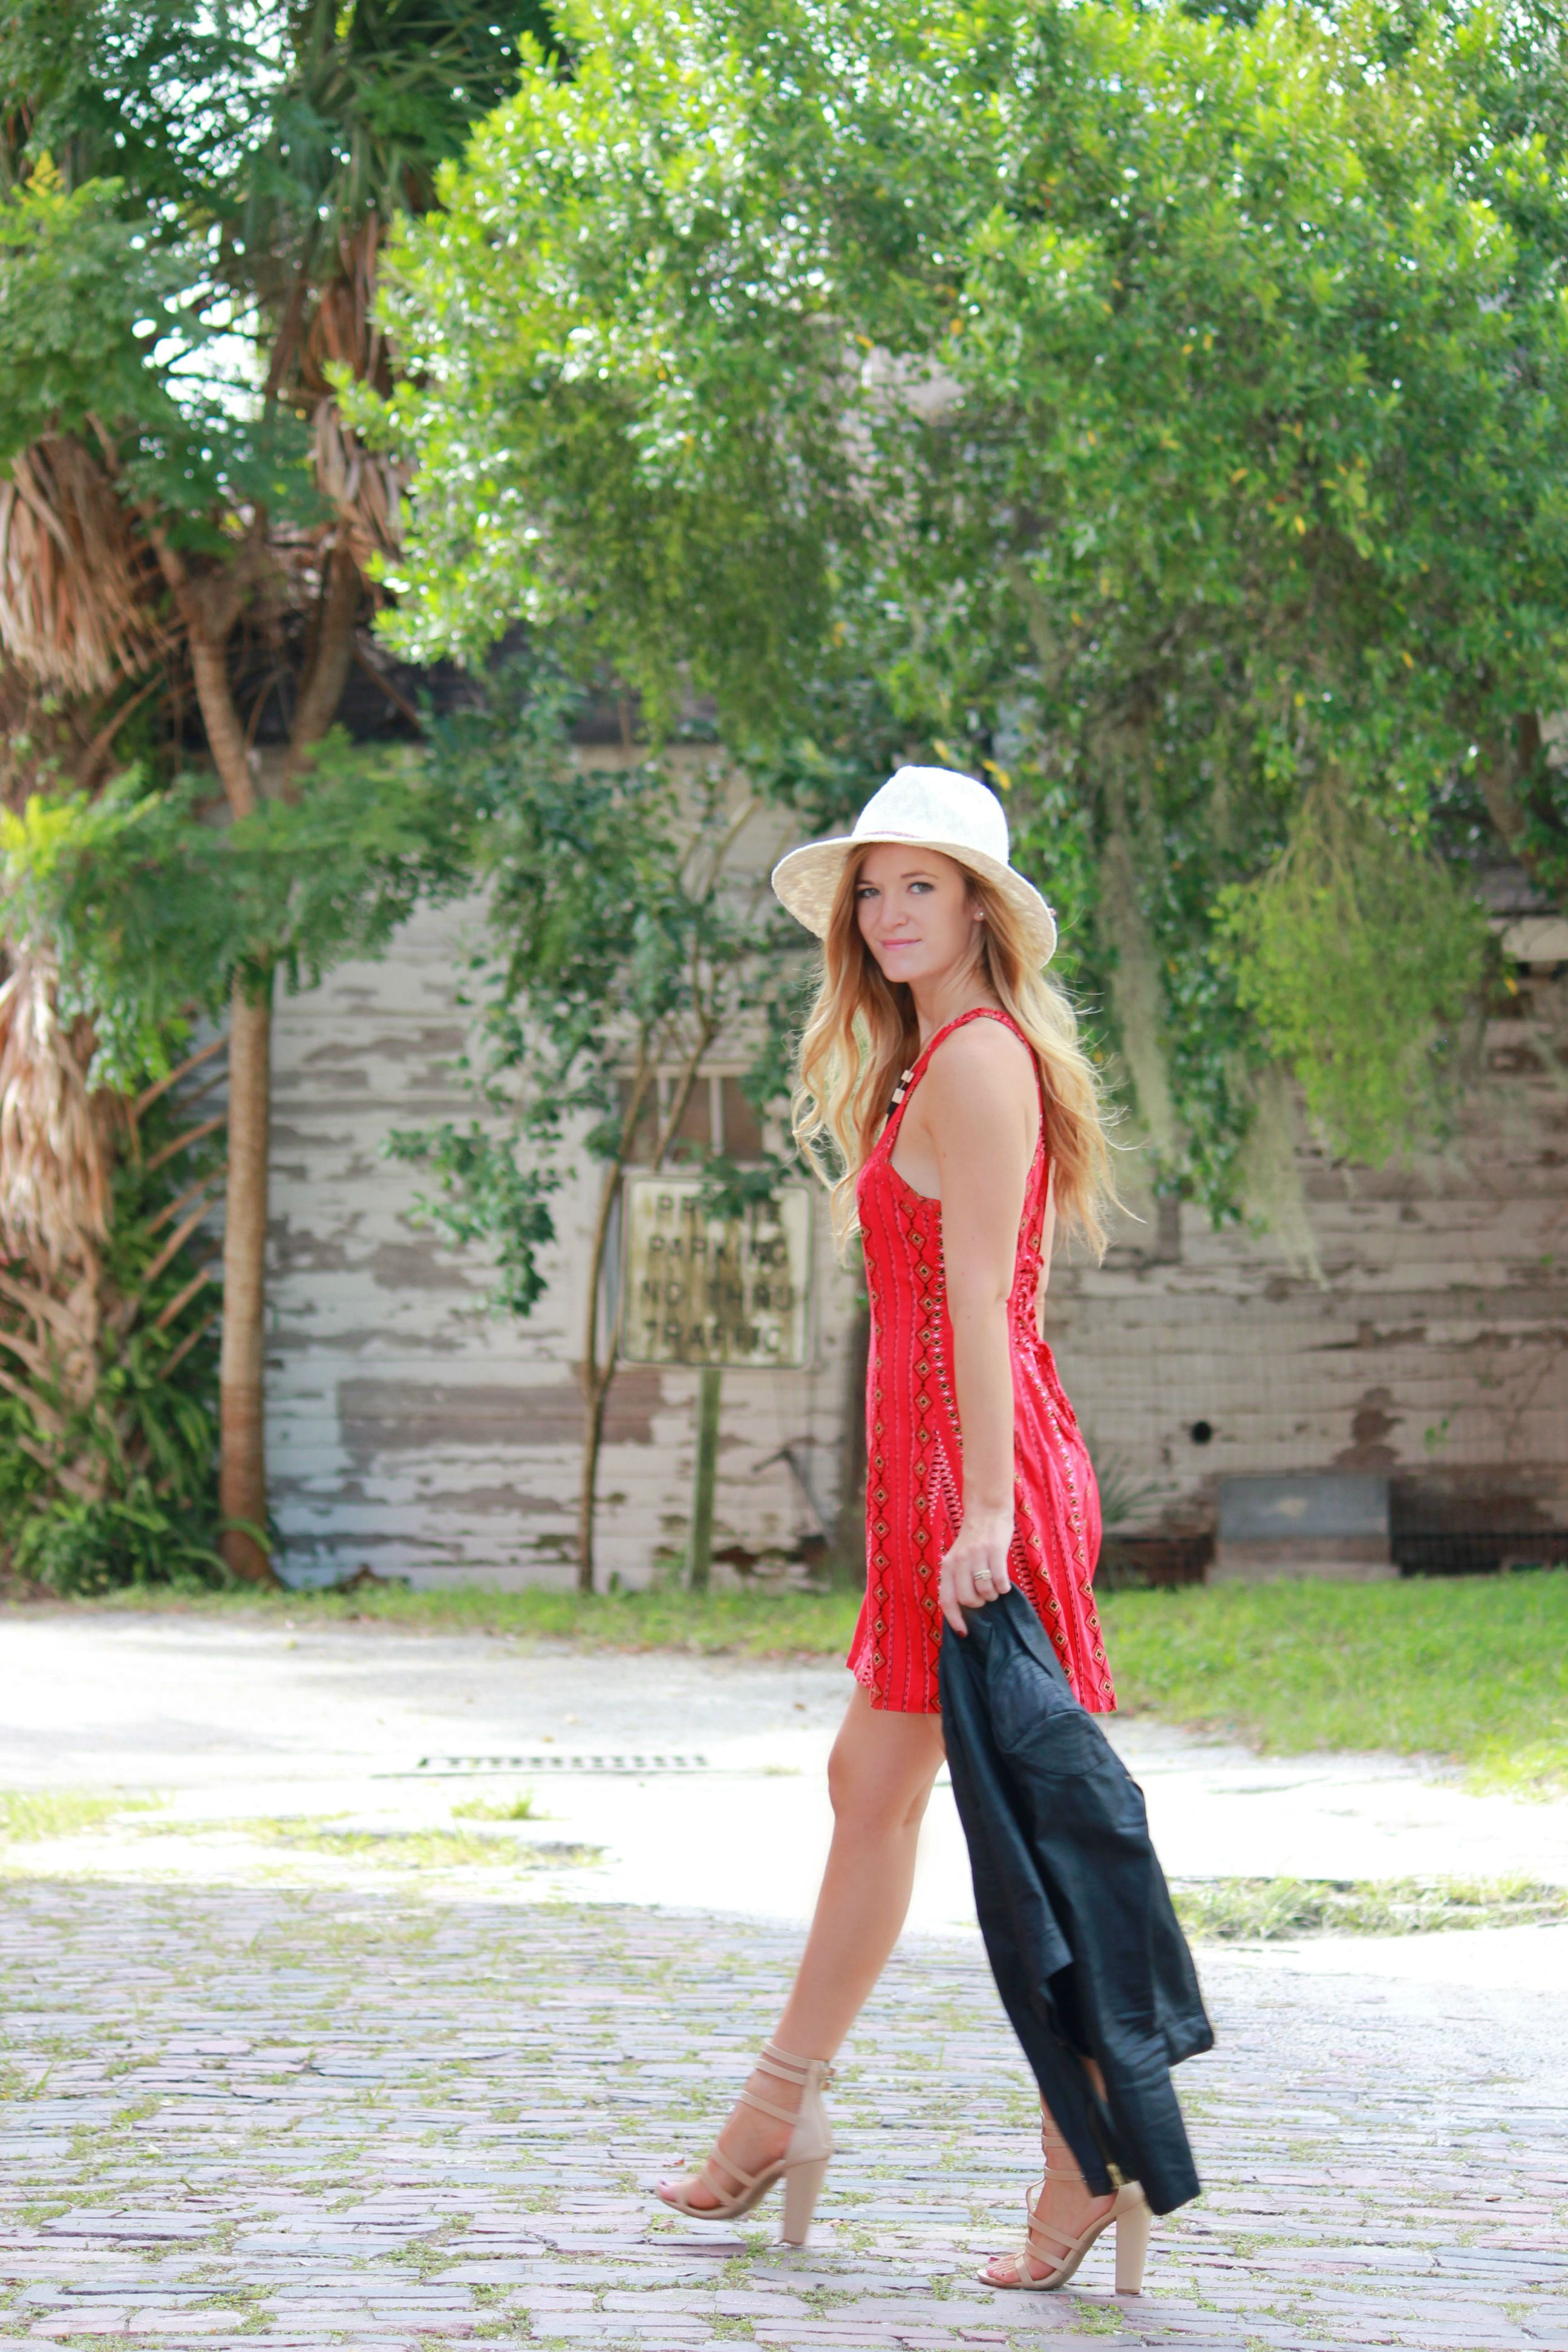 florida/ orlando blogger styles kendall and kylie for pacsun aztec dress, floppy hat, and h&m leather jacket for a fall outfit.